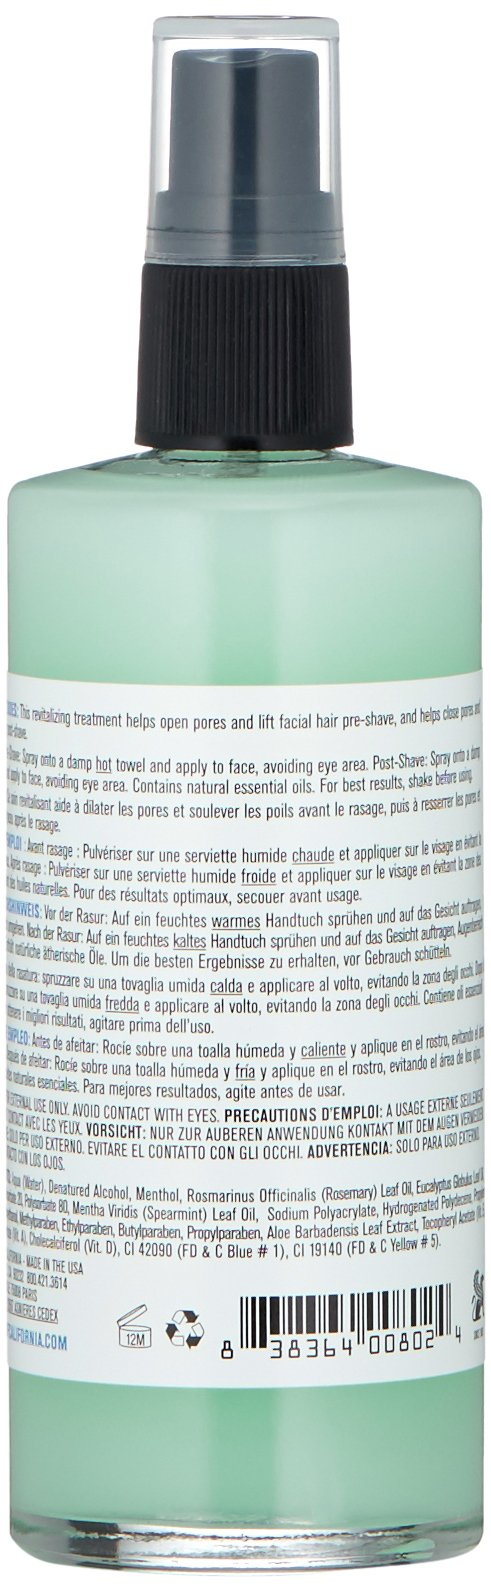 Baxter of California Shave Tonic, 4 fl. oz. by Baxter of California (Image #2)